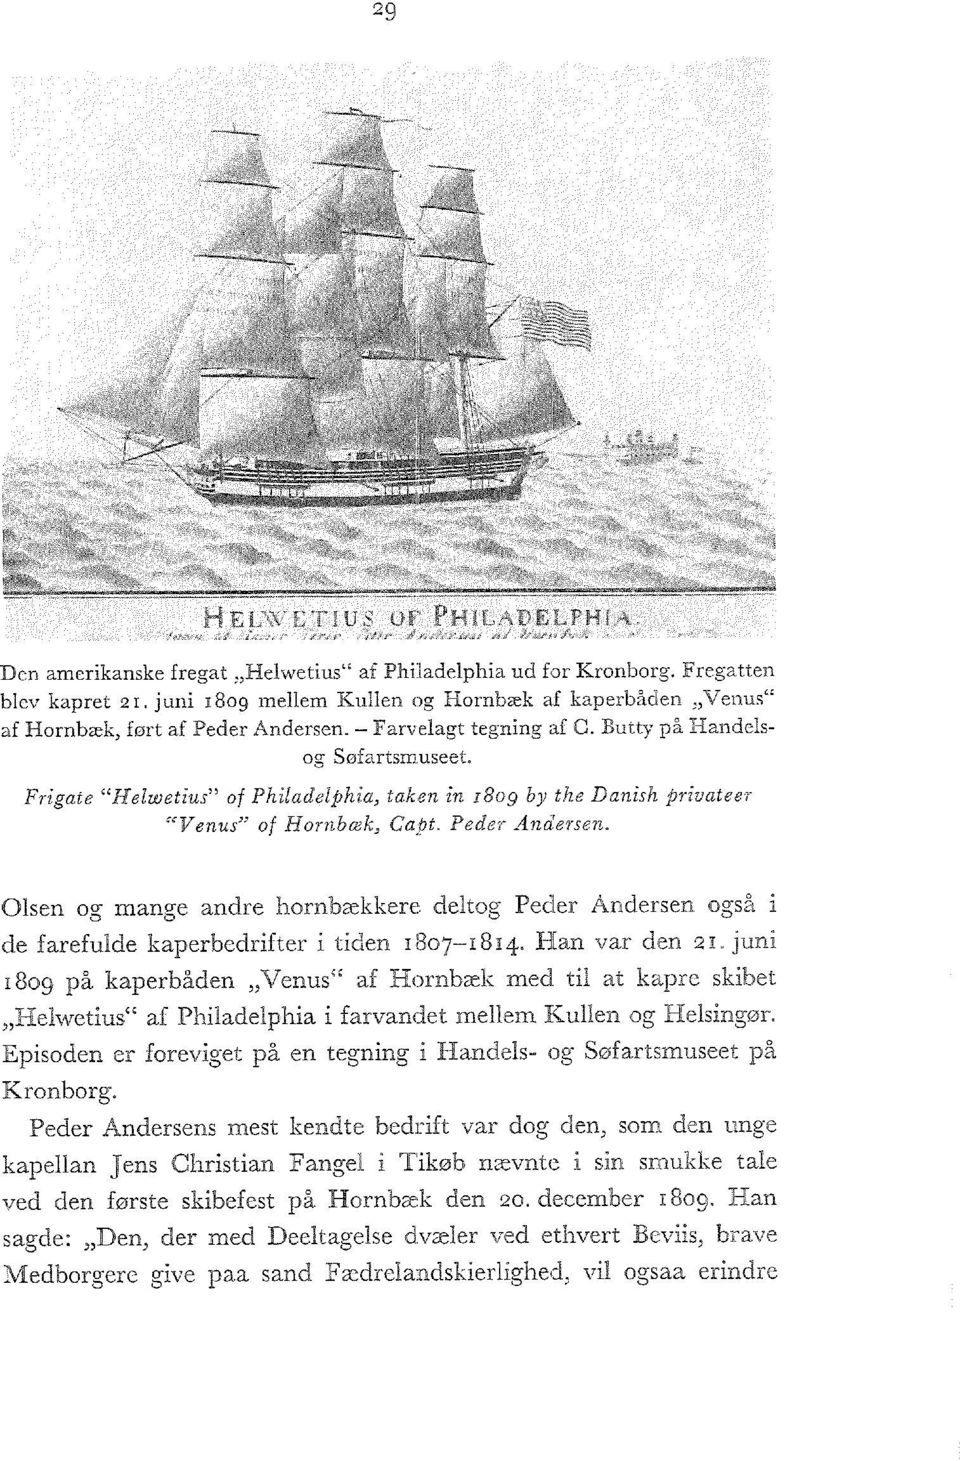 "Frigate ""Helwetius"" of Philadelphia, taken in i8og by the Danish privateer ""Venus"" of Hornbæk, Capt. Peder Andersen."